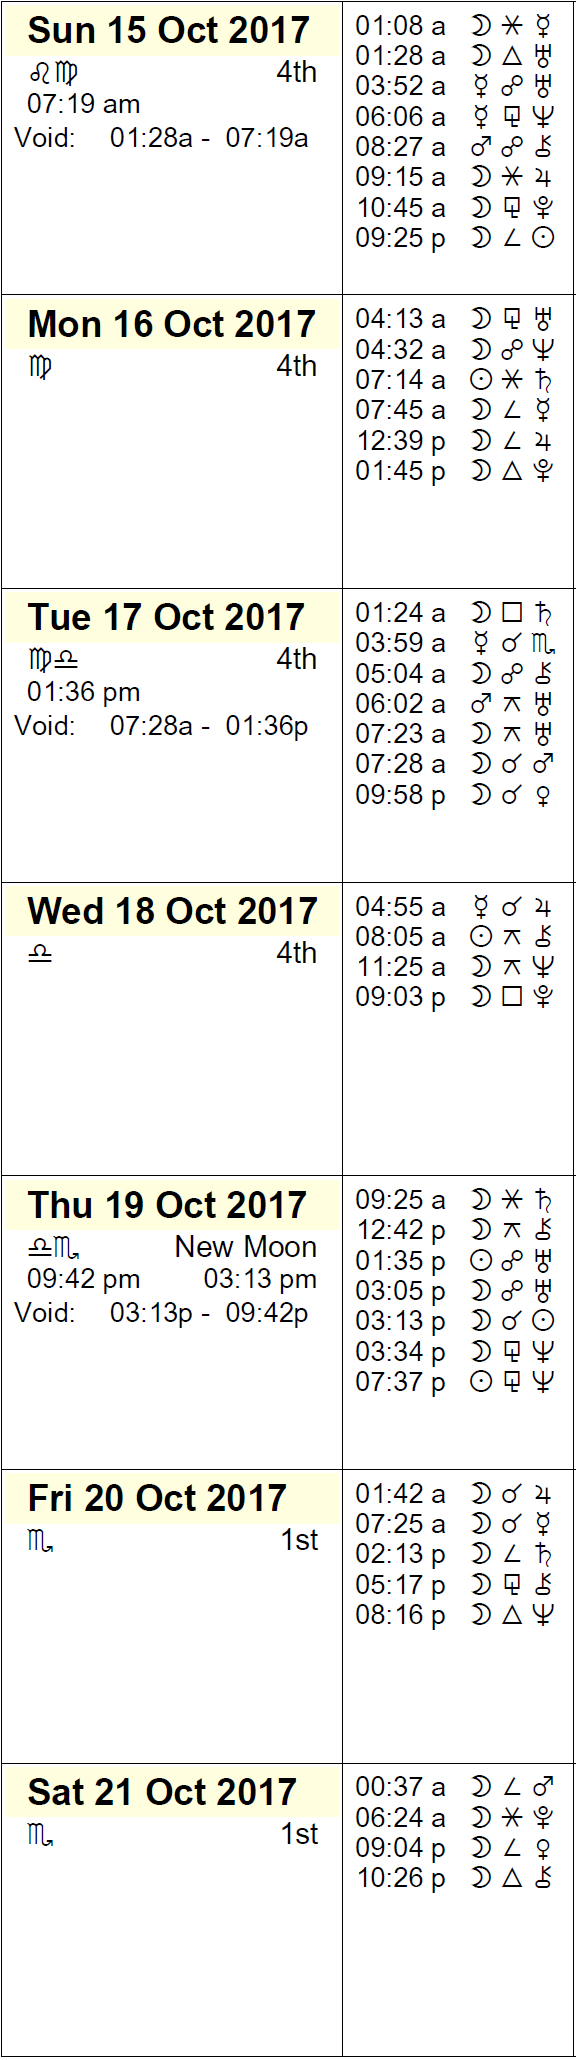 This Week in Astrology Calendar: October 15 to 21, 2017